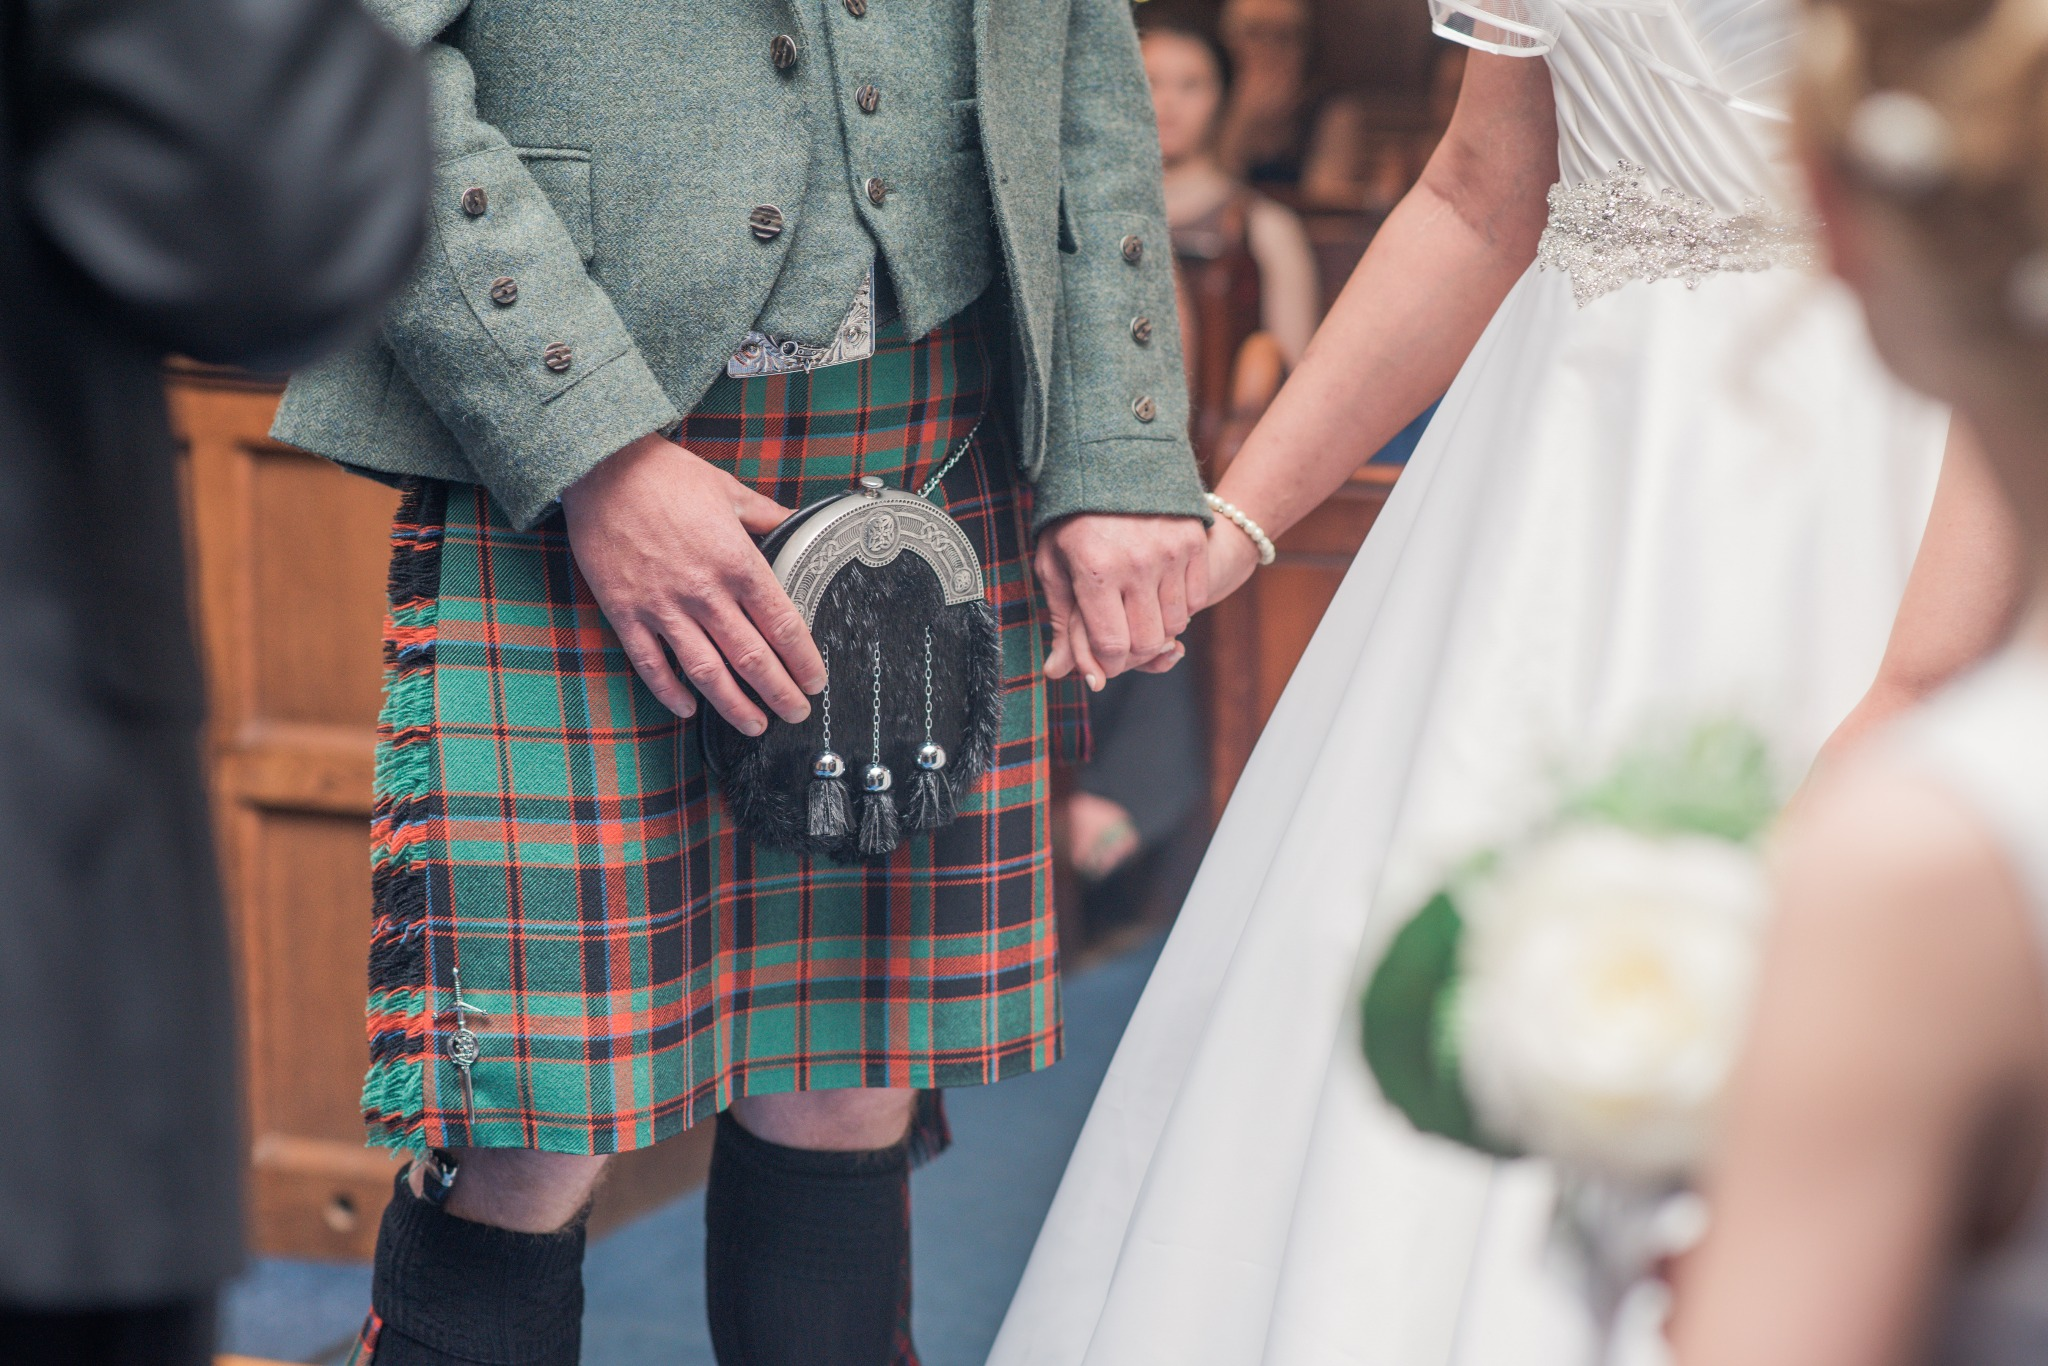 A Scottish Wedding without a handfasting ribbon